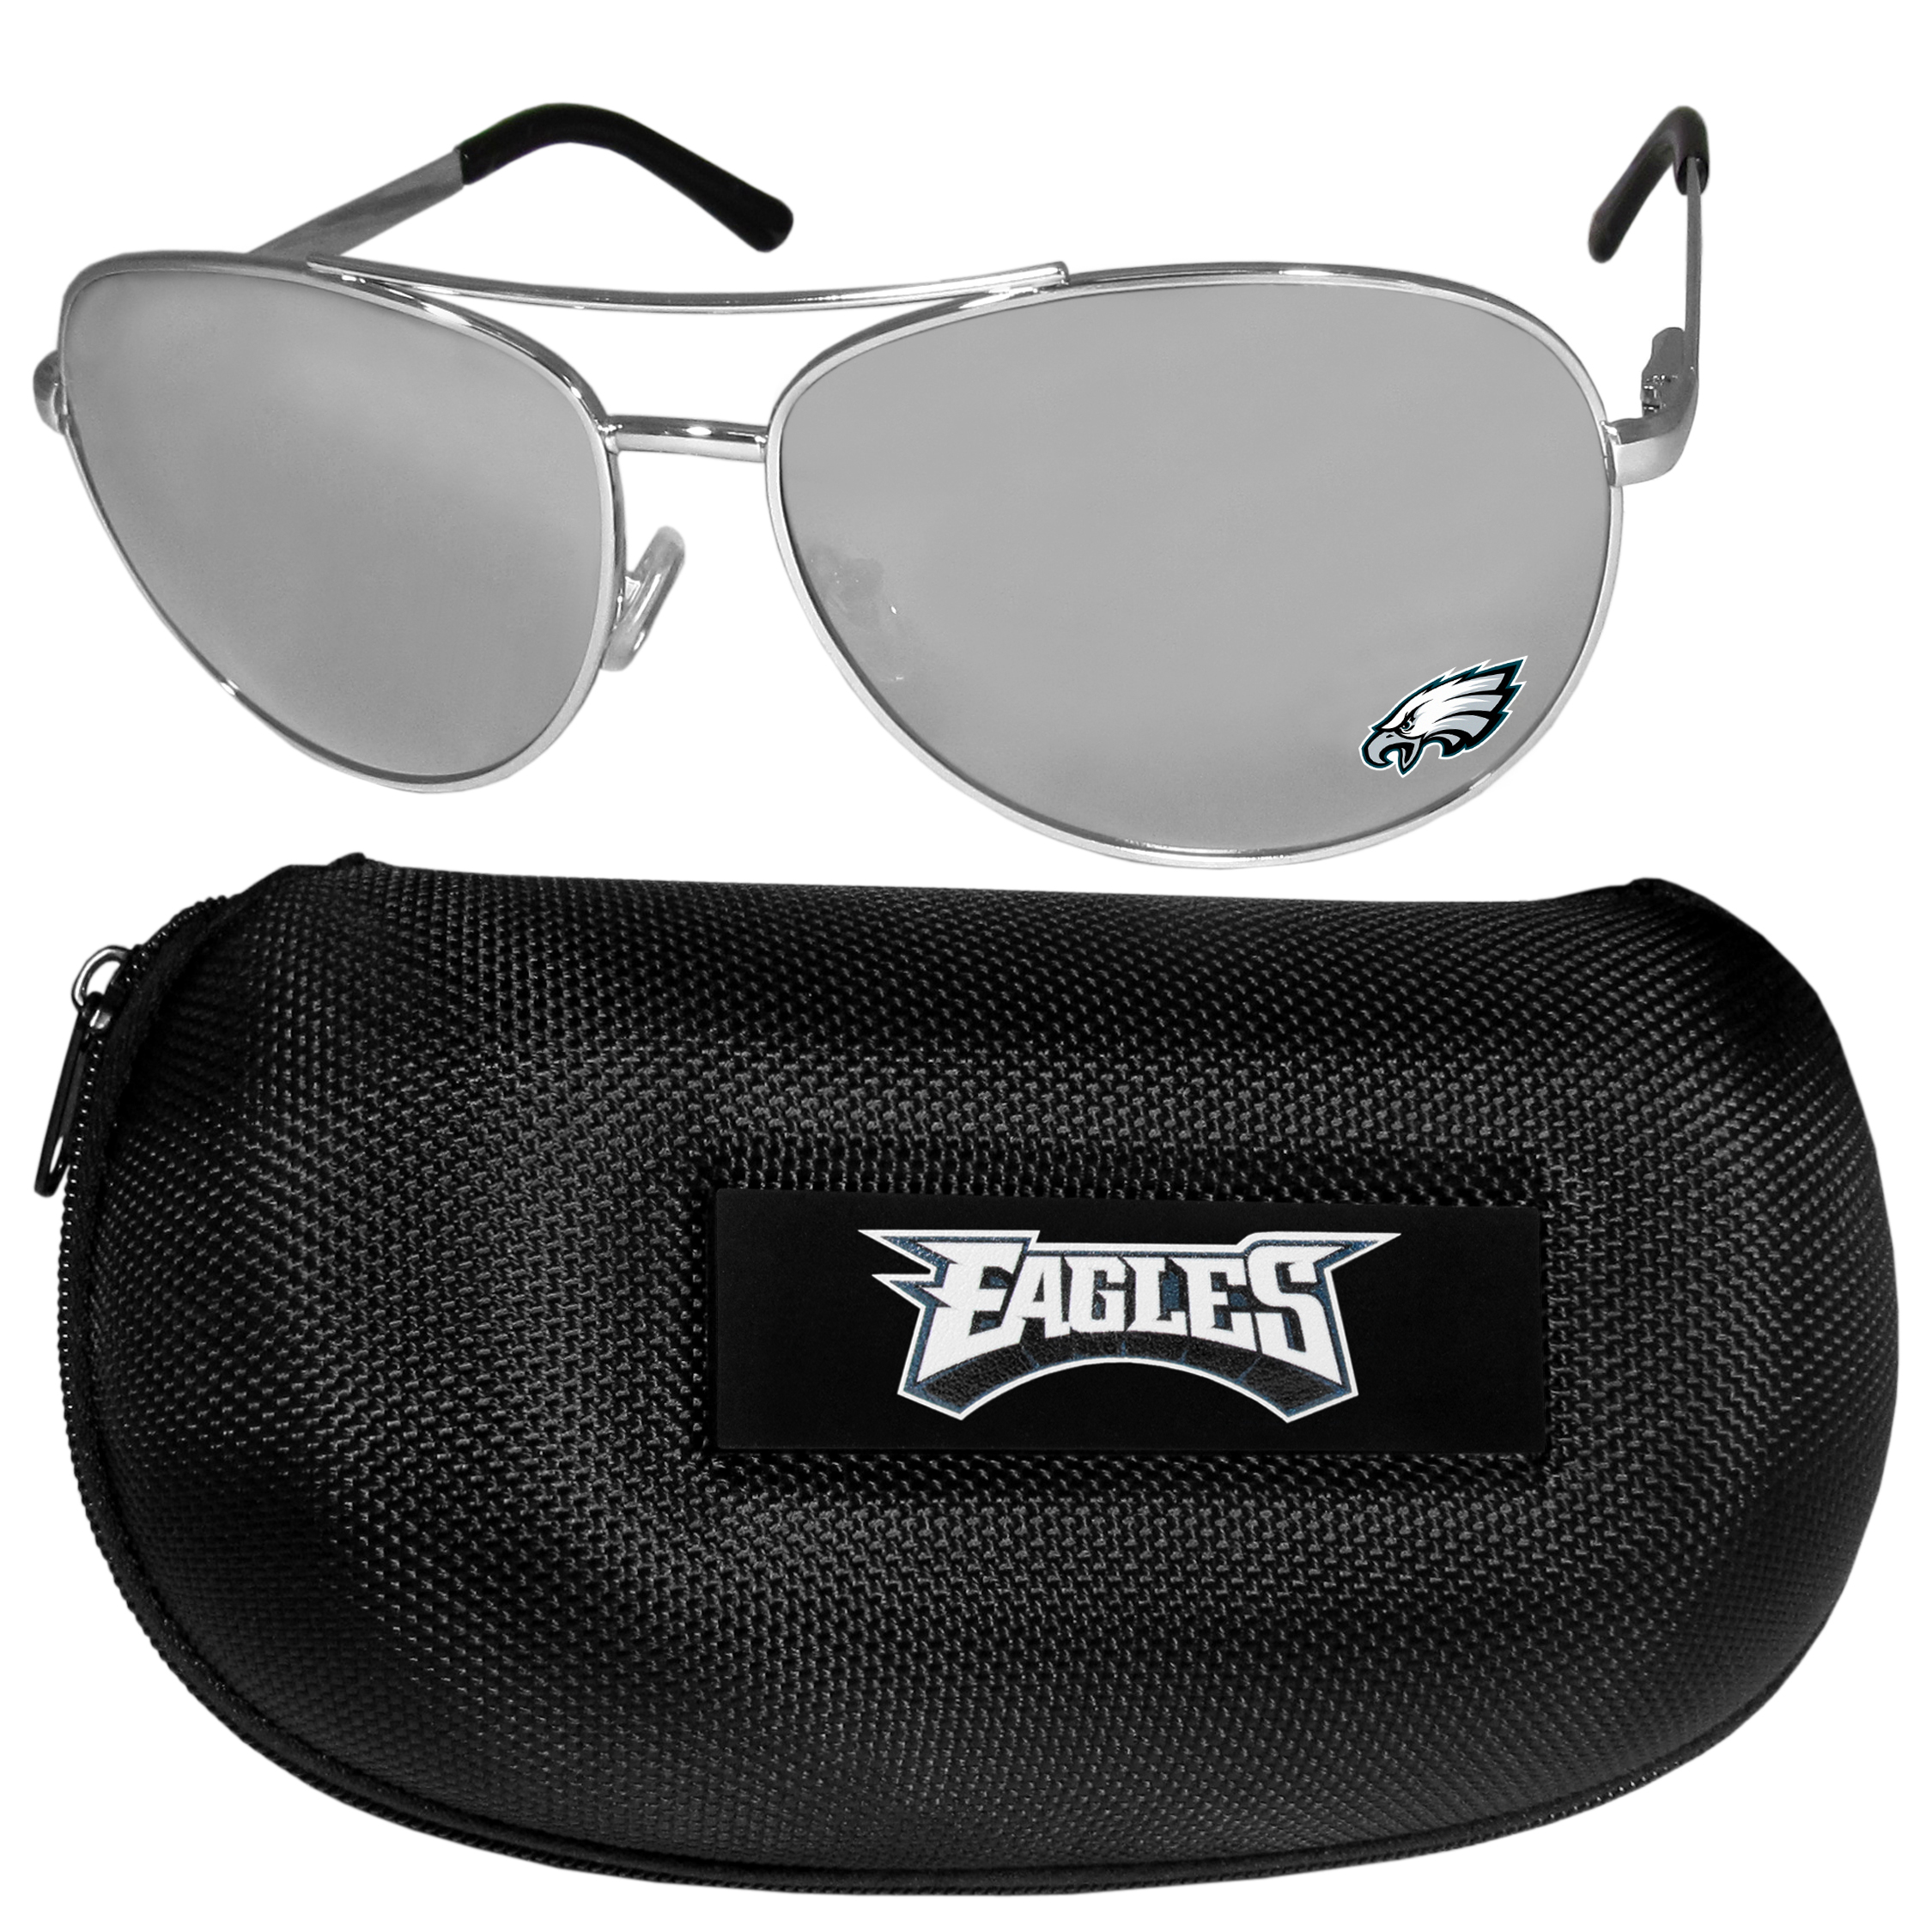 Philadelphia Eagles Aviator Sunglasses and Zippered Carrying Case - Aviator sunglasses are truly an iconic retro fashion statement that never goes out-of-style. Our Philadelphia Eagles  aviator sunglasses pair this classic look with your love of the game. The iridium coated lenses reduce glare while driving, boating, golfing and their 100% UVA/UVB rating provides you with the maximum UV protection for all your outdoor activities. A millennial favorite, these affordable designer frames are the perfect eyewear accessory for a sports fan that is looking for high-quality at an affordable price. The durable, flex hinged frames are tough enough for hiking and camping or if you prefer sun bathing by the pool or on the beach these shades will really stand the test of time. The sunglasses come with a hard shell zippered case which has a large team logo on the lid that will make even the most die-hard fan proud!